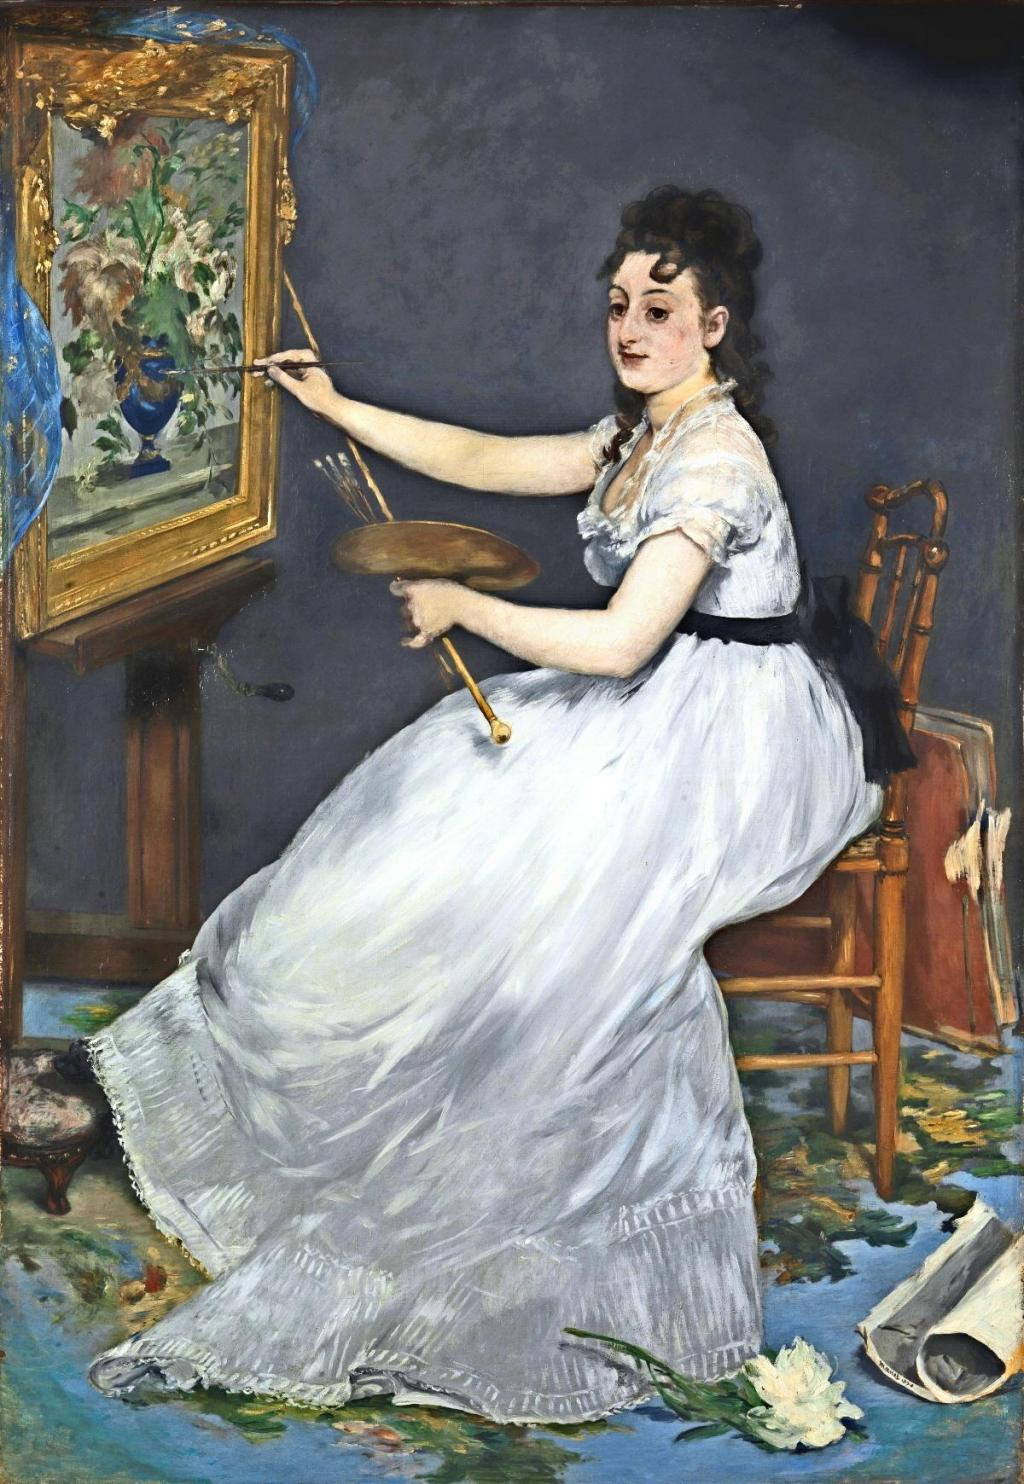 Édouard Manet. A Portrait of Eva Gonzalès in Manets Atelier. 1870